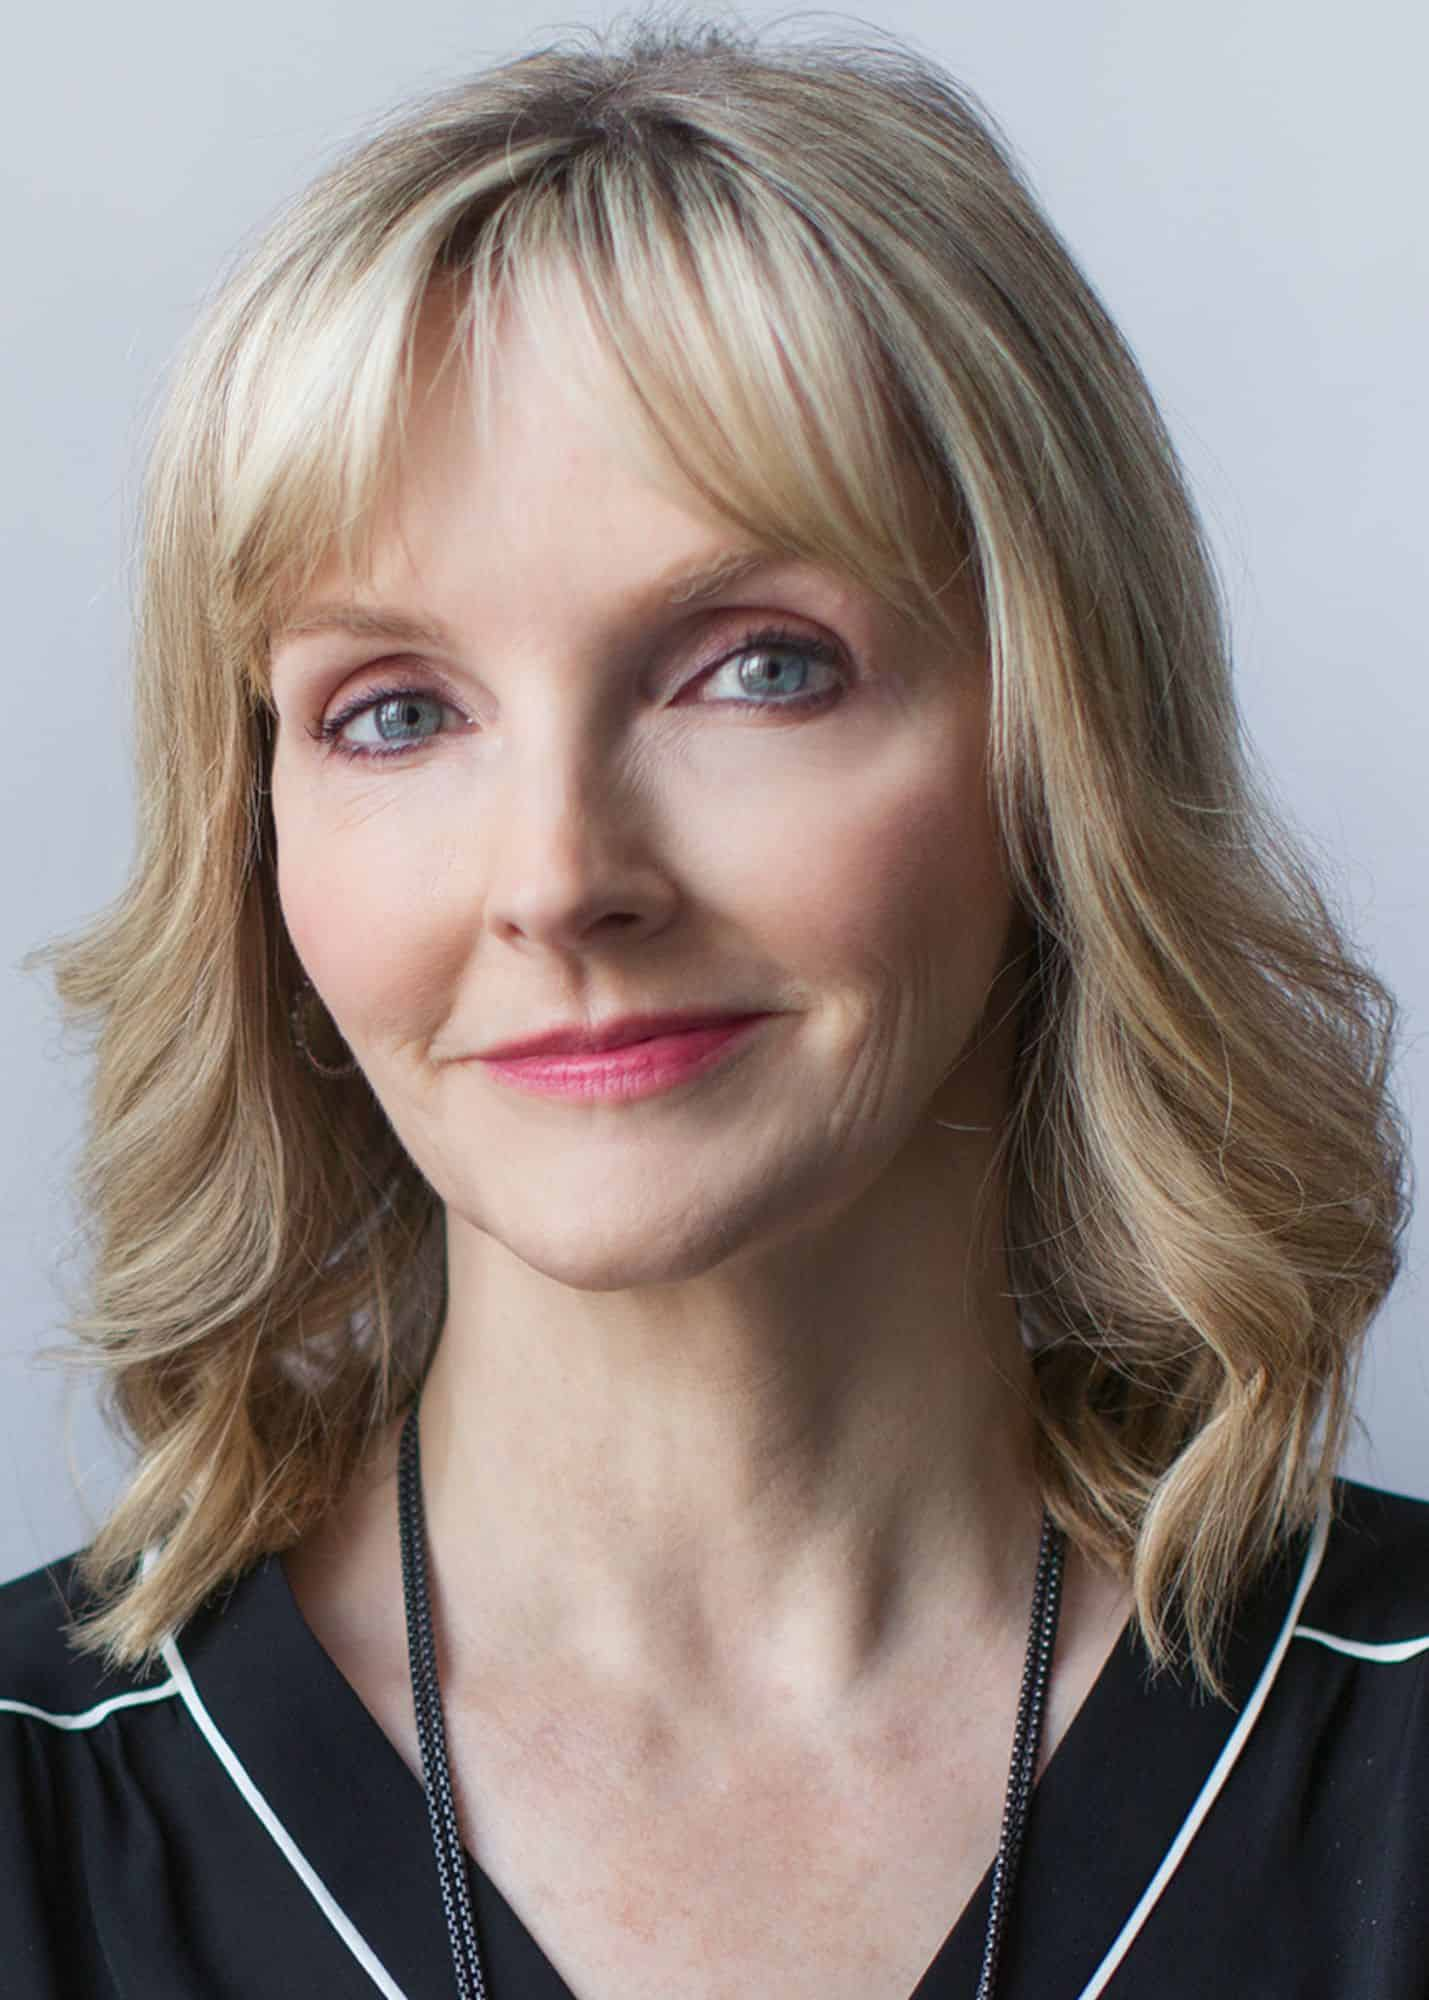 Toronto's Most Influential: Life Advice from Kirstine Stewart, VP of Media, Twitter